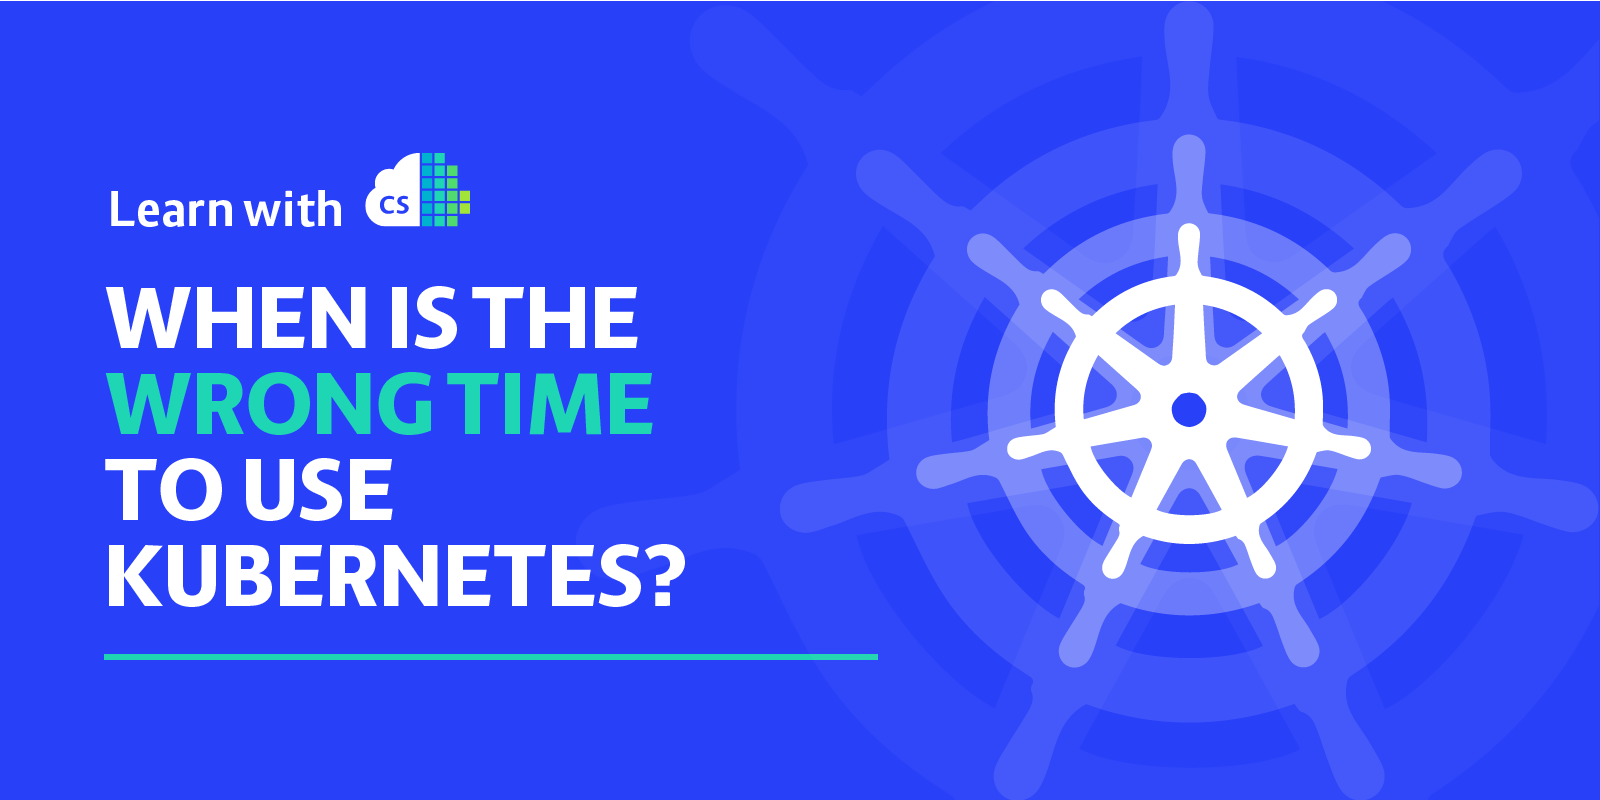 When is Wrong time to use kubernetes?